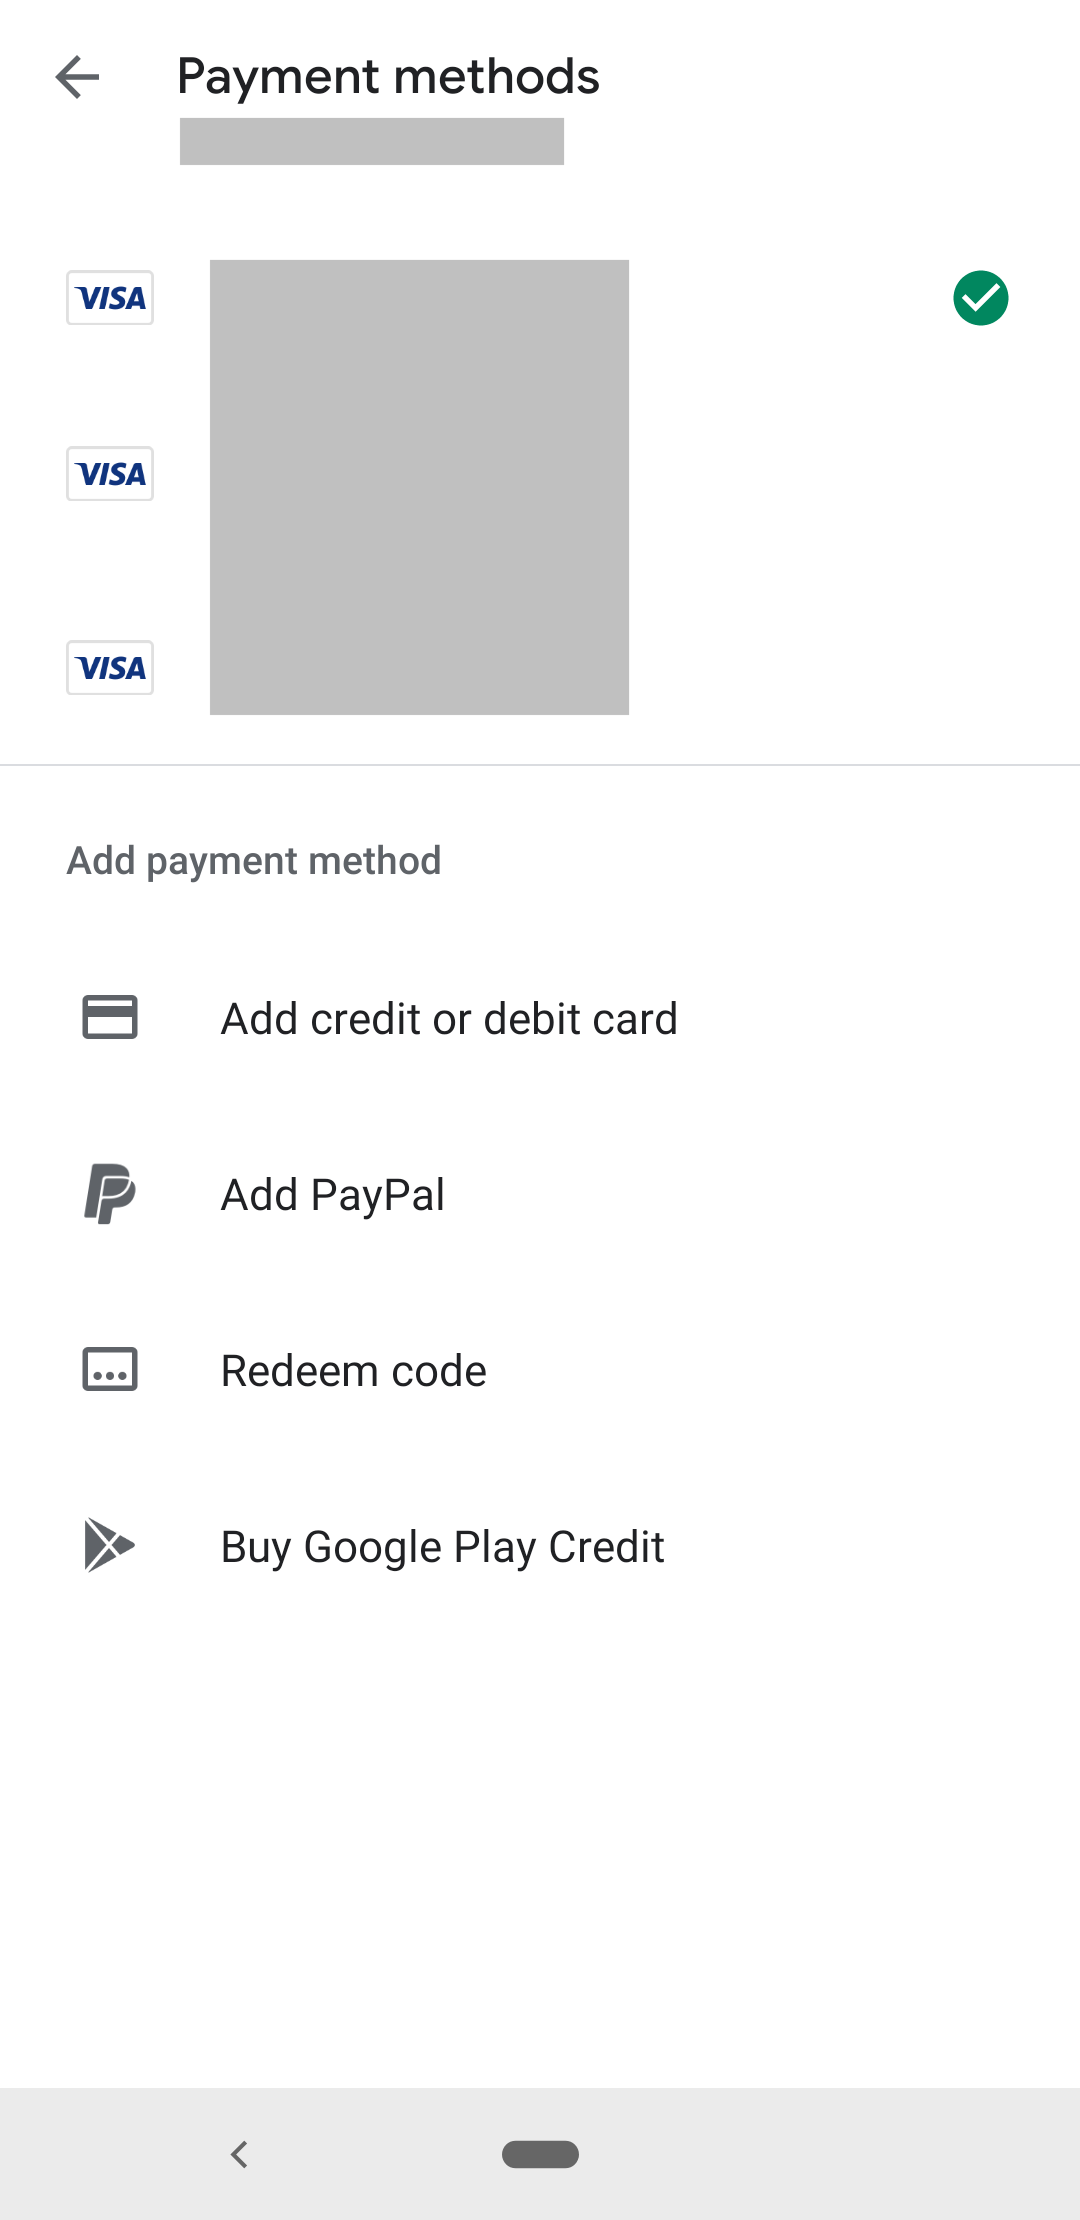 screen that lists payment methods for an in-app purchase